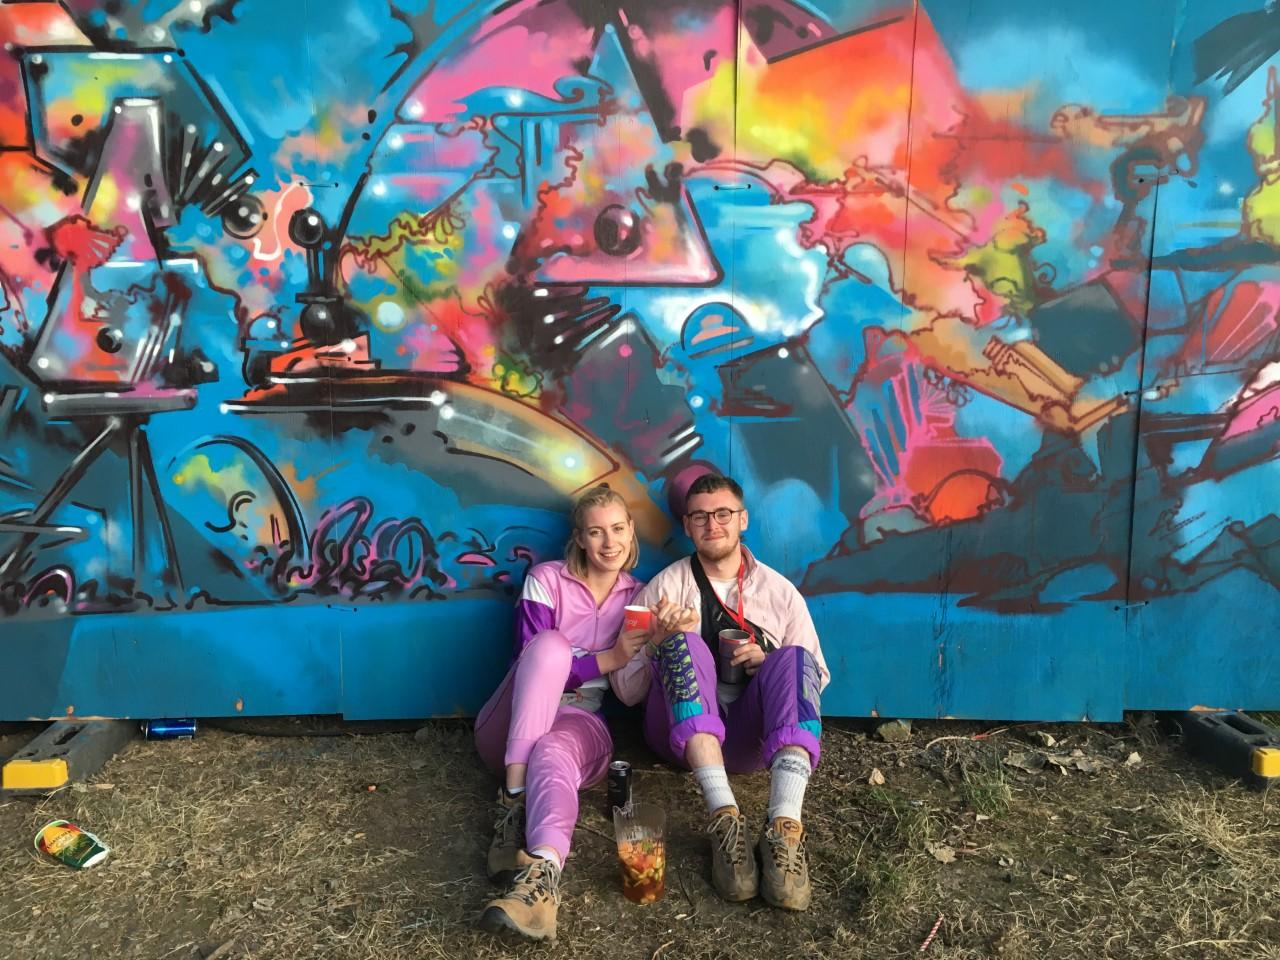 Glasto couple goals in matching pink and purple